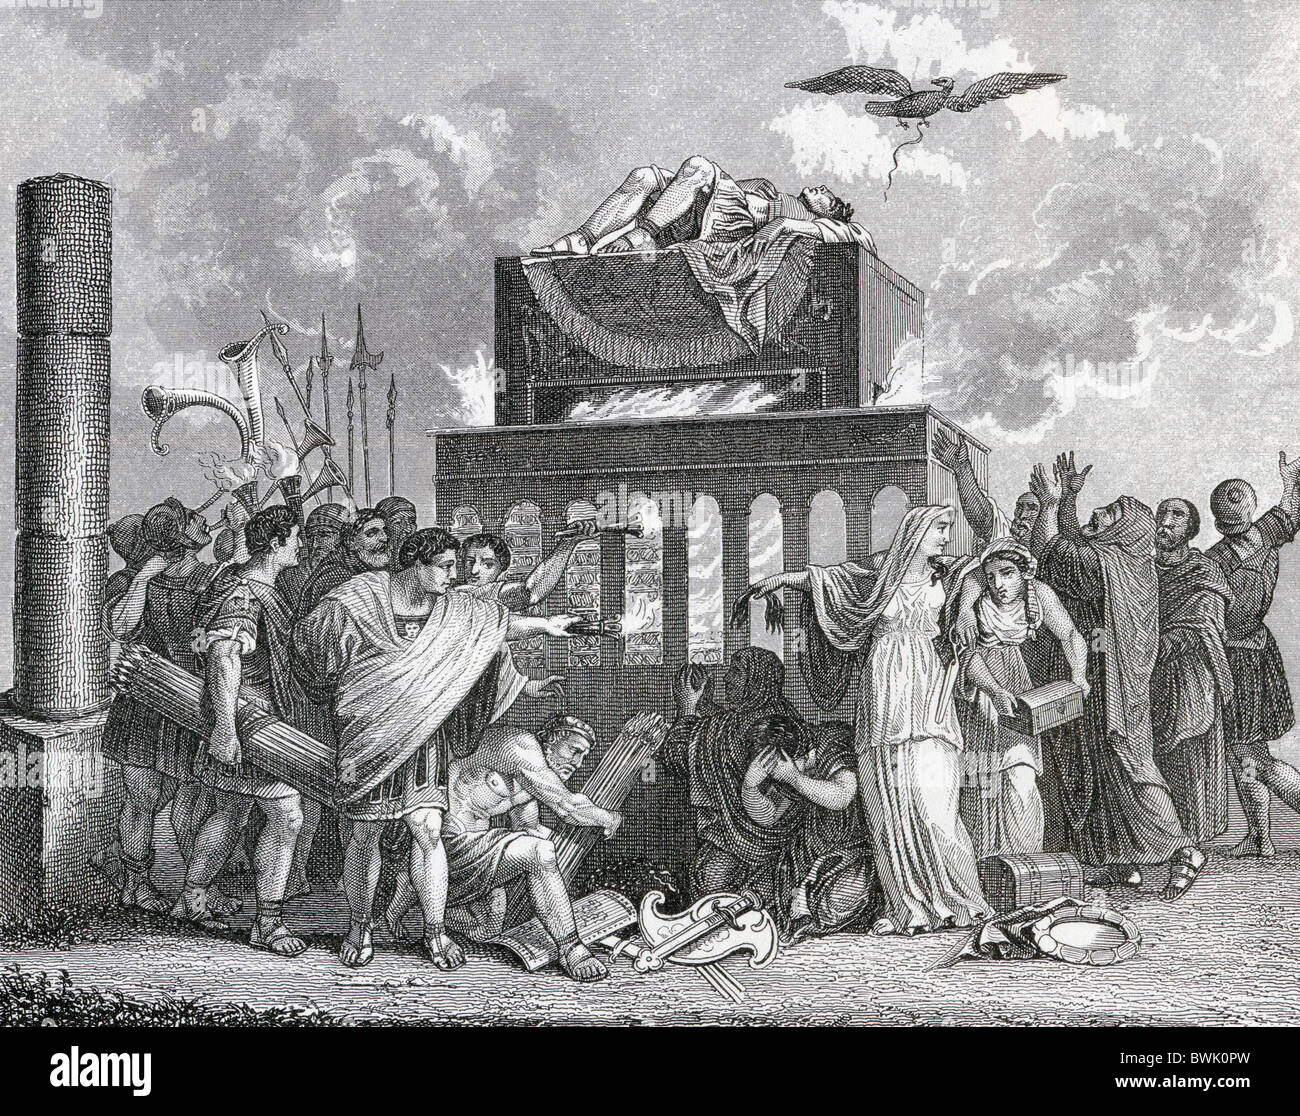 Funeral of an emperor in ancient Rome. - Stock Image